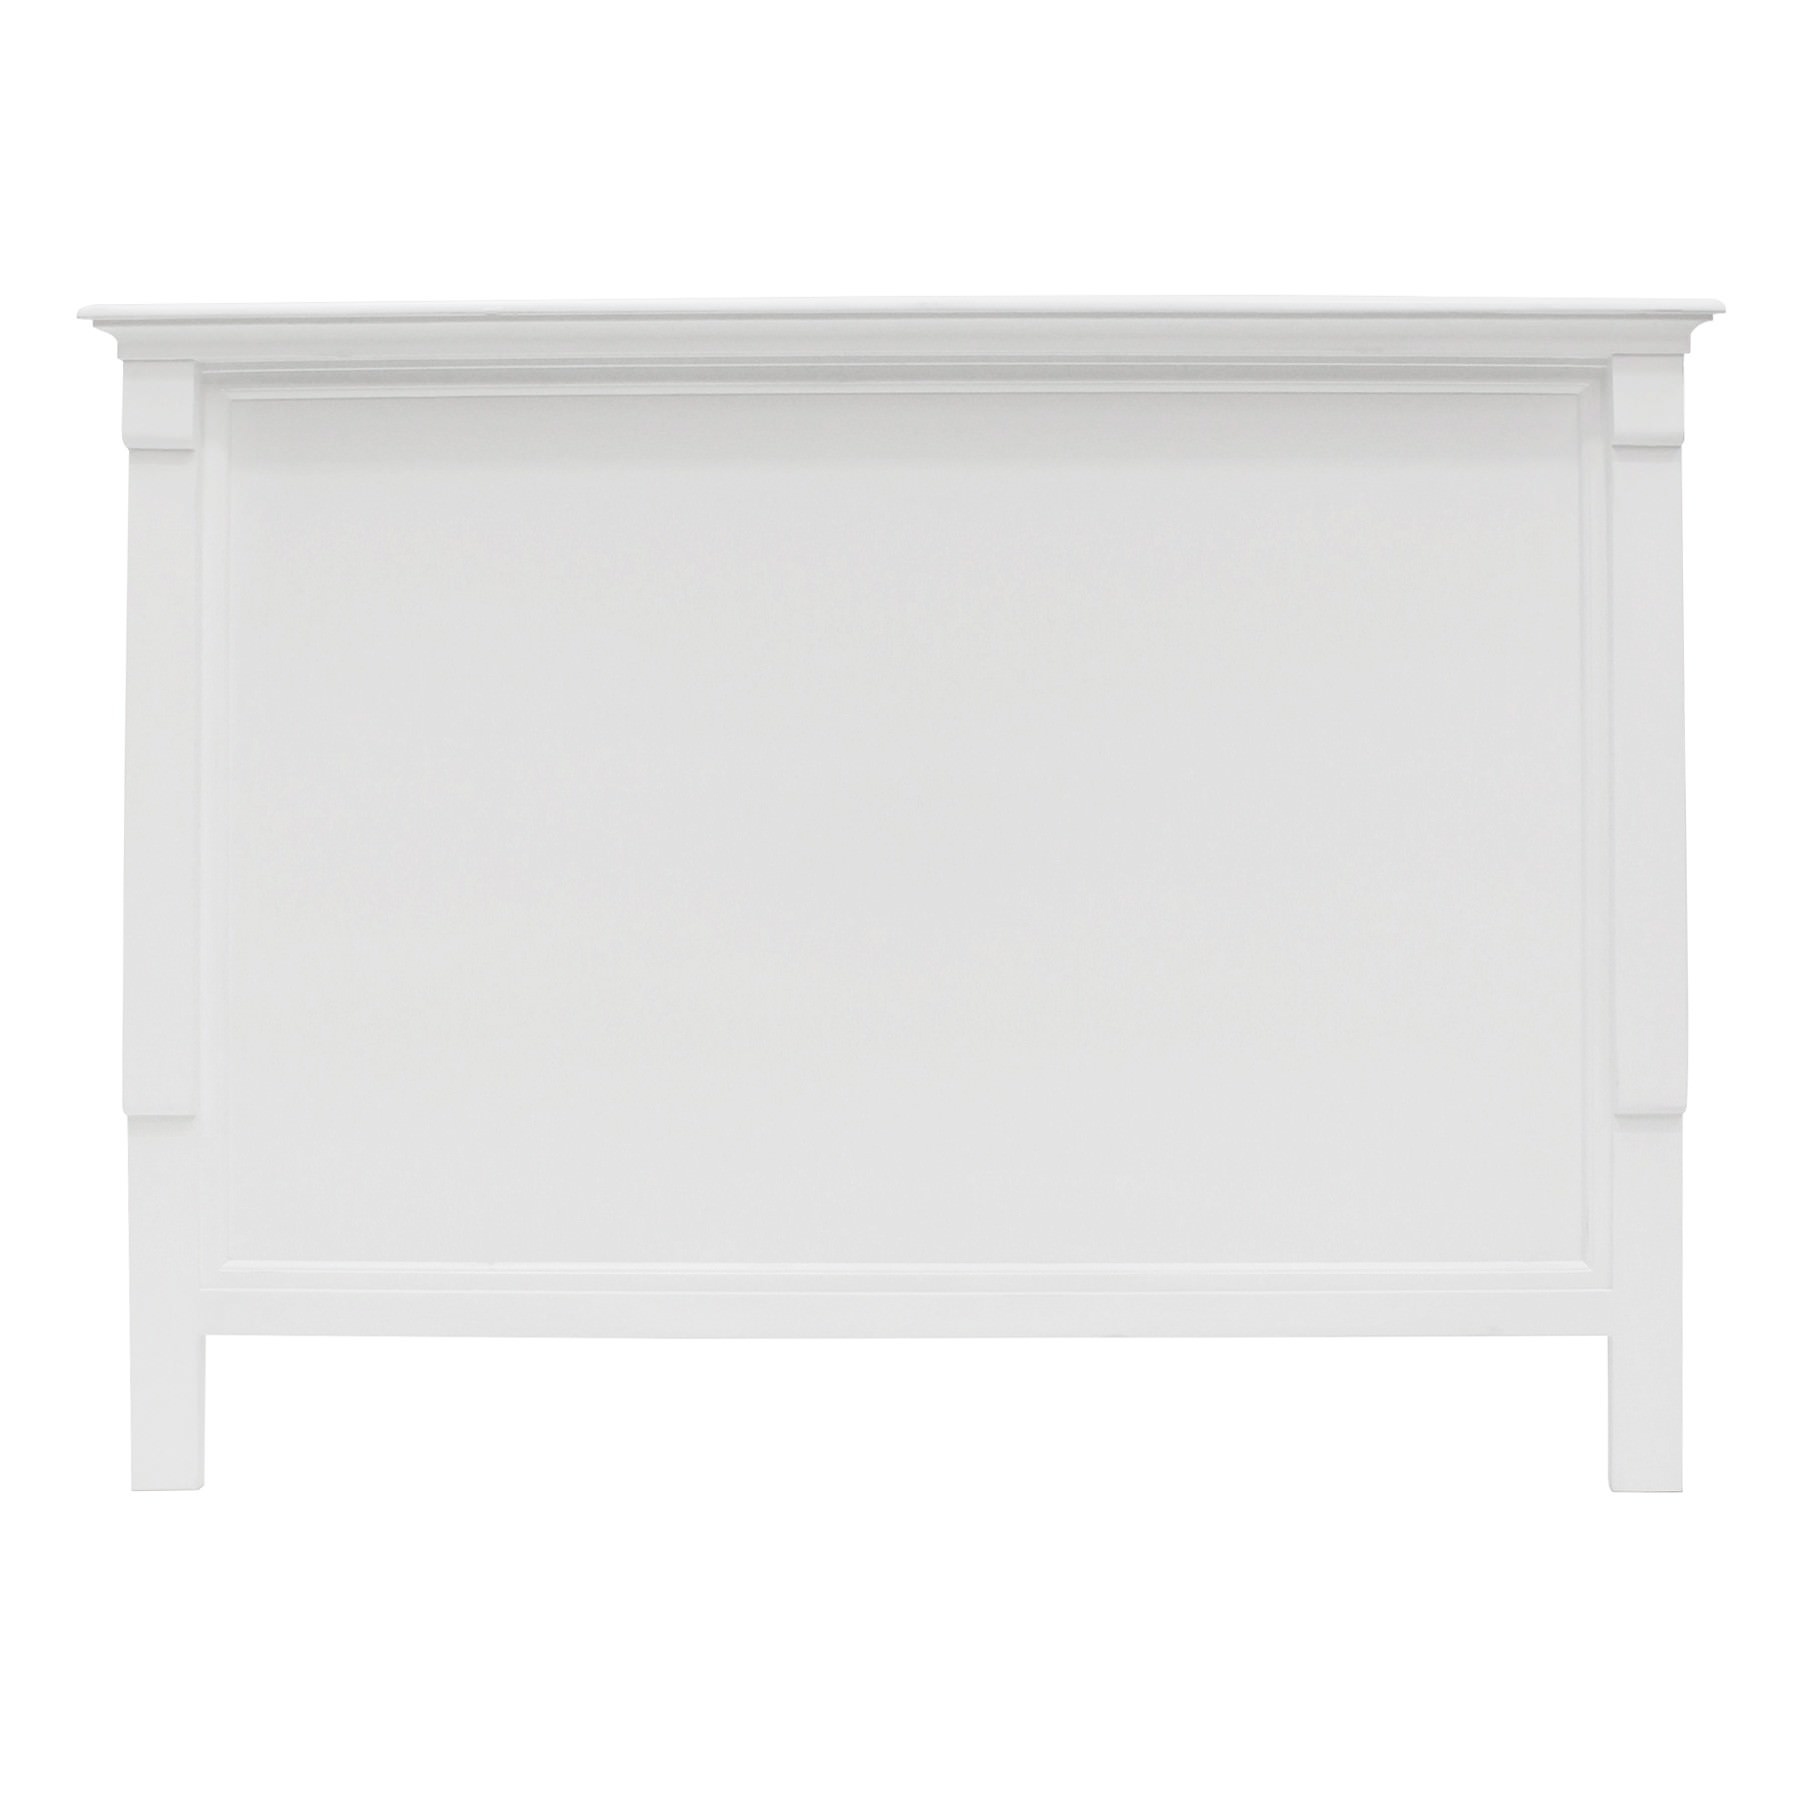 Belley Hand Crafted Mahogany Timber Bed Headboard, Queen, White